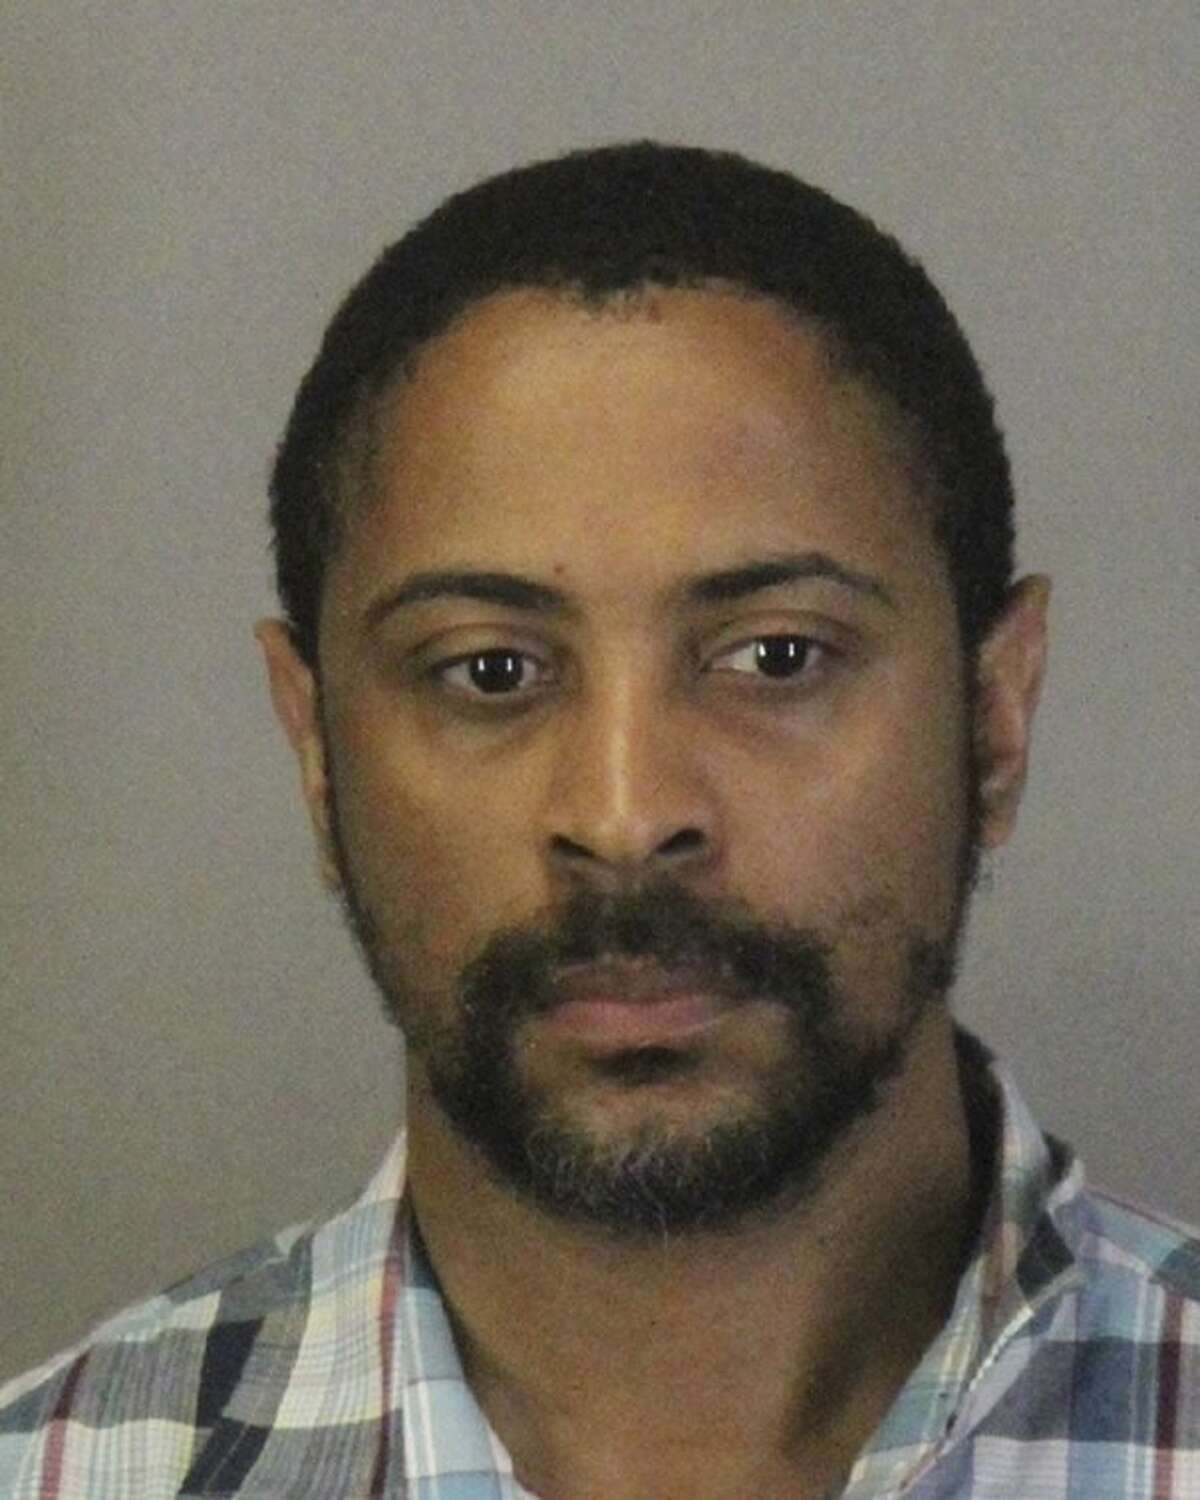 FILE - This file photo released Wednesday, April 24, 2019, by the Sunnyvale Department of Public Safety shows Isaiah Joel Peoples. The former Army sharpshooter with a history of post-traumatic stress disorder plowed his car at high speed into a group of pedestrians in a Silicon Valley suburb, injuring eight people, then told authorities that he intentionally hit them, police said. He was charged Thursday, April 25, 2019, with eight counts of attempted murder. (Sunnyvale Department of Public Safety via AP, File)